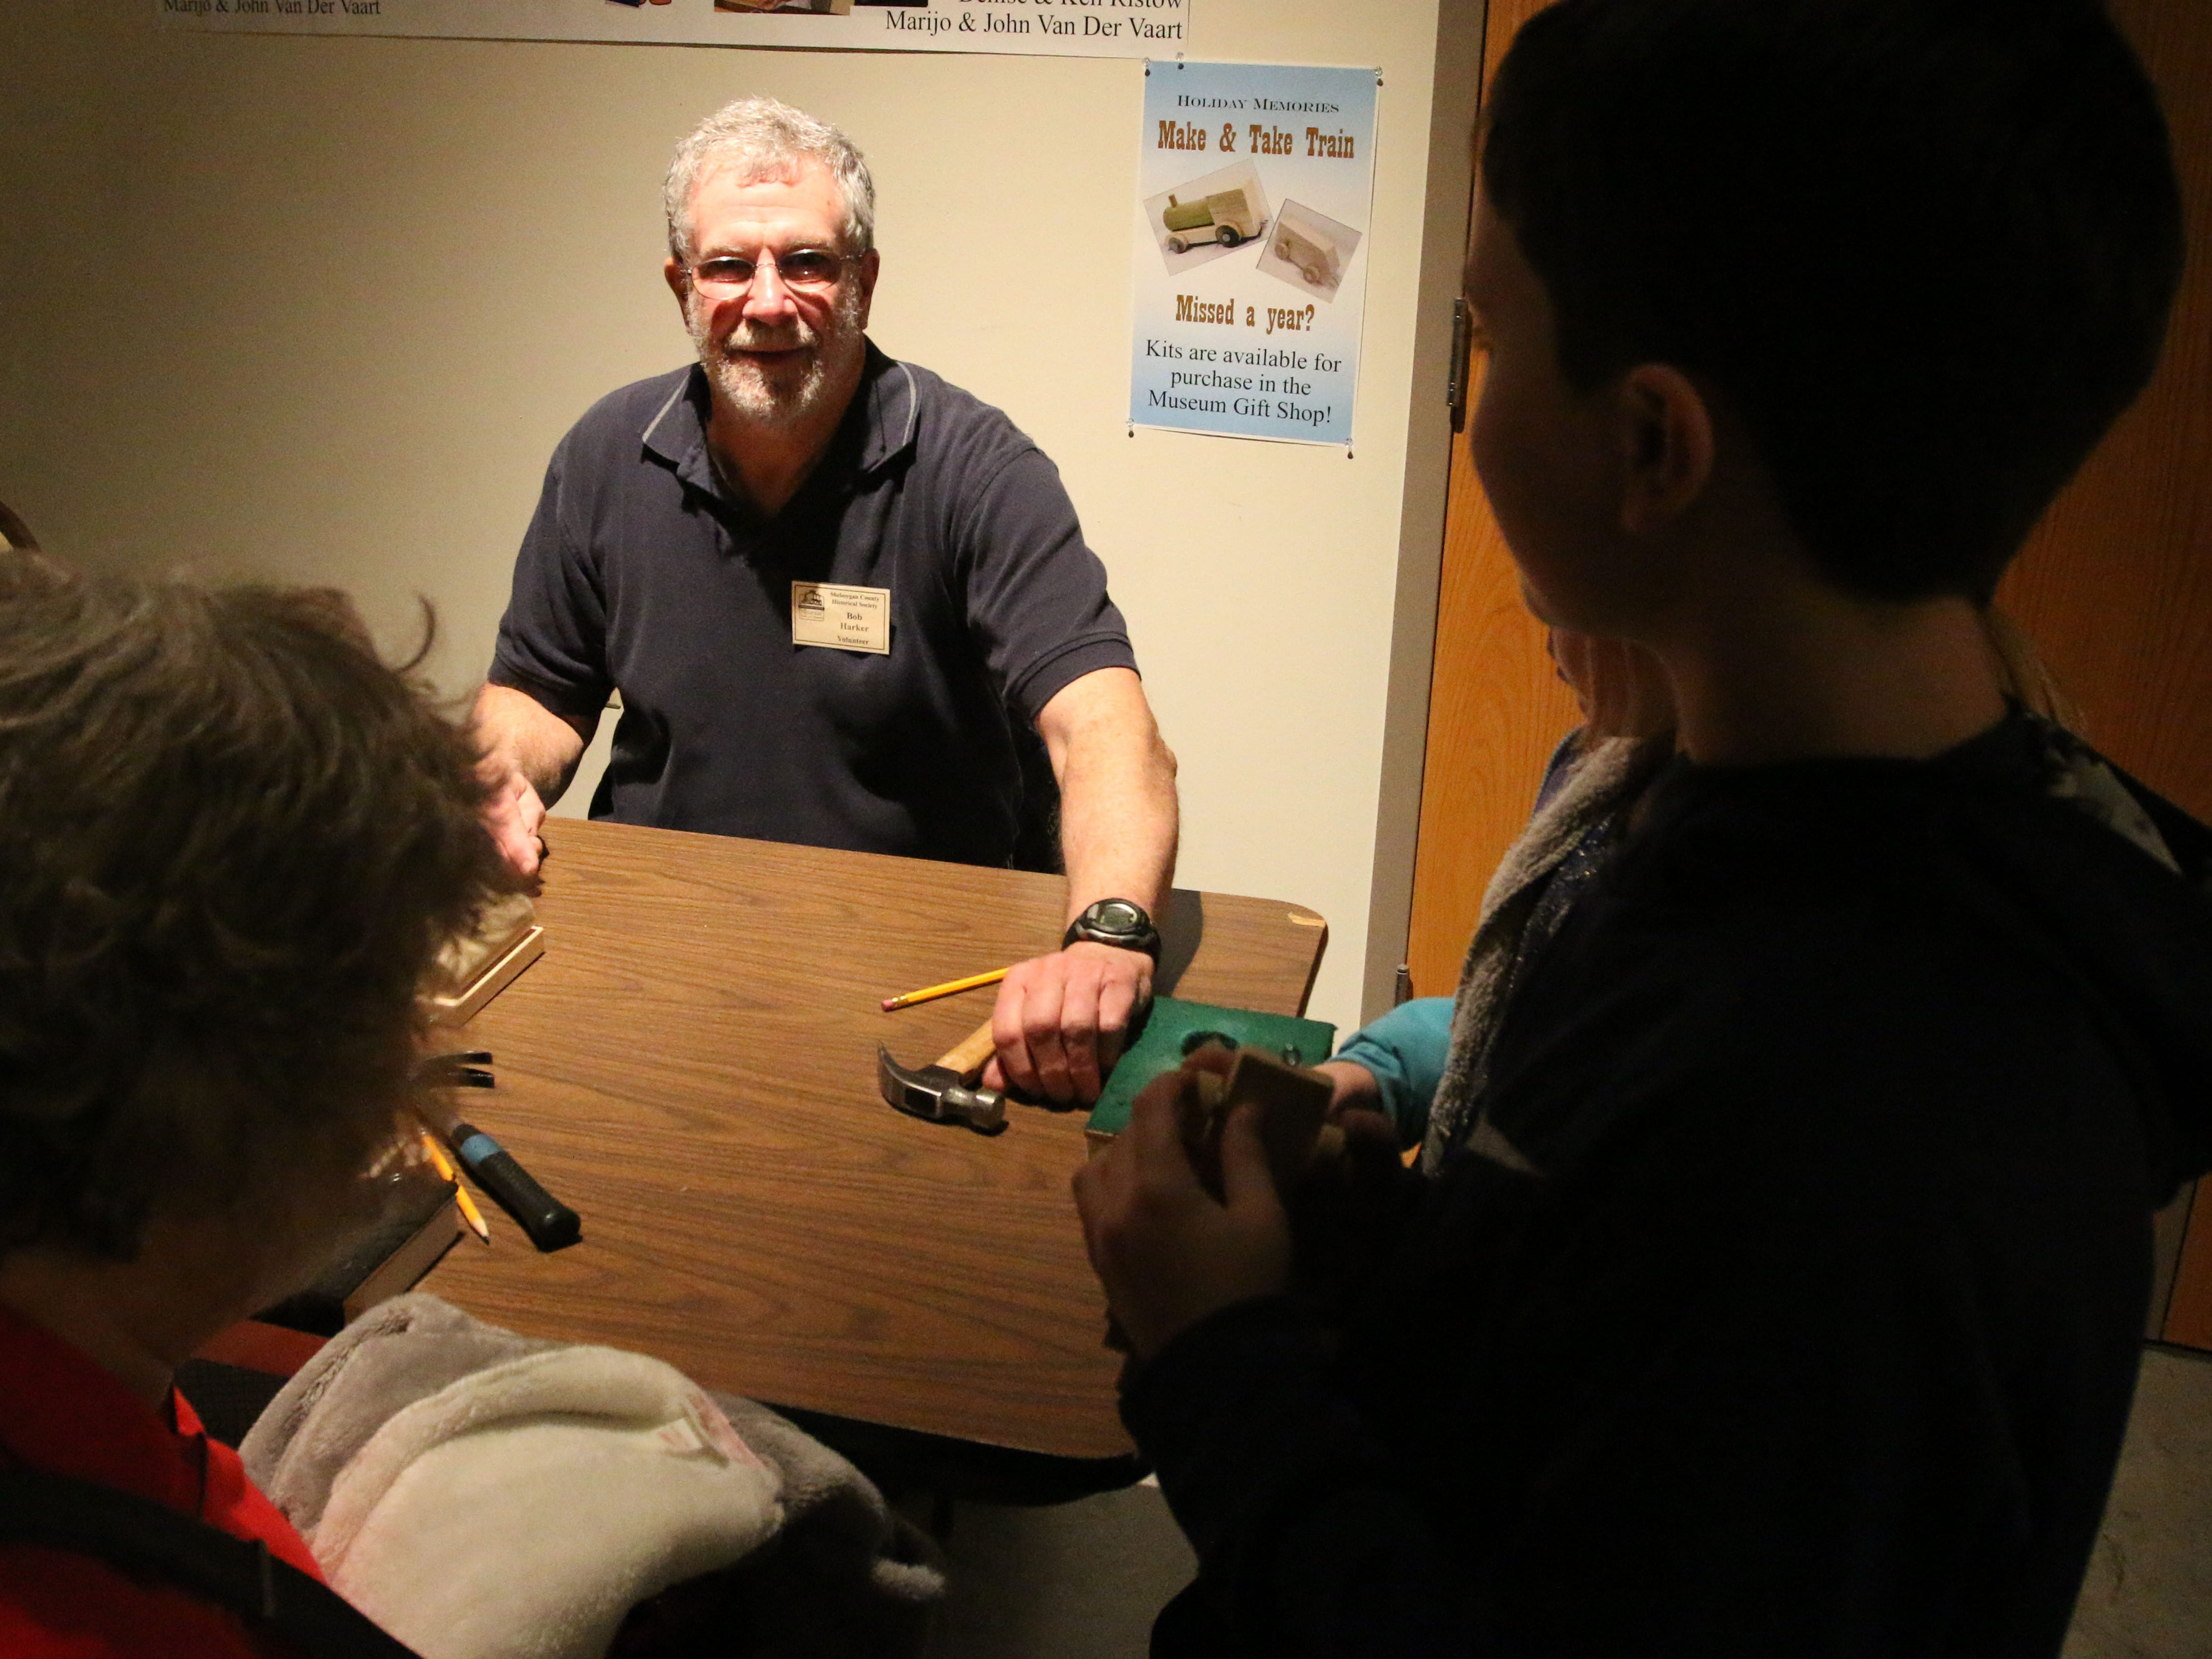 Museum volunteer Bob Harker greets children at a hands on toy workshop for children at the Sheboygan County Historical Museum's Holiday Memories, Friday, November 23, 2018, in Sheboygan, Wis.